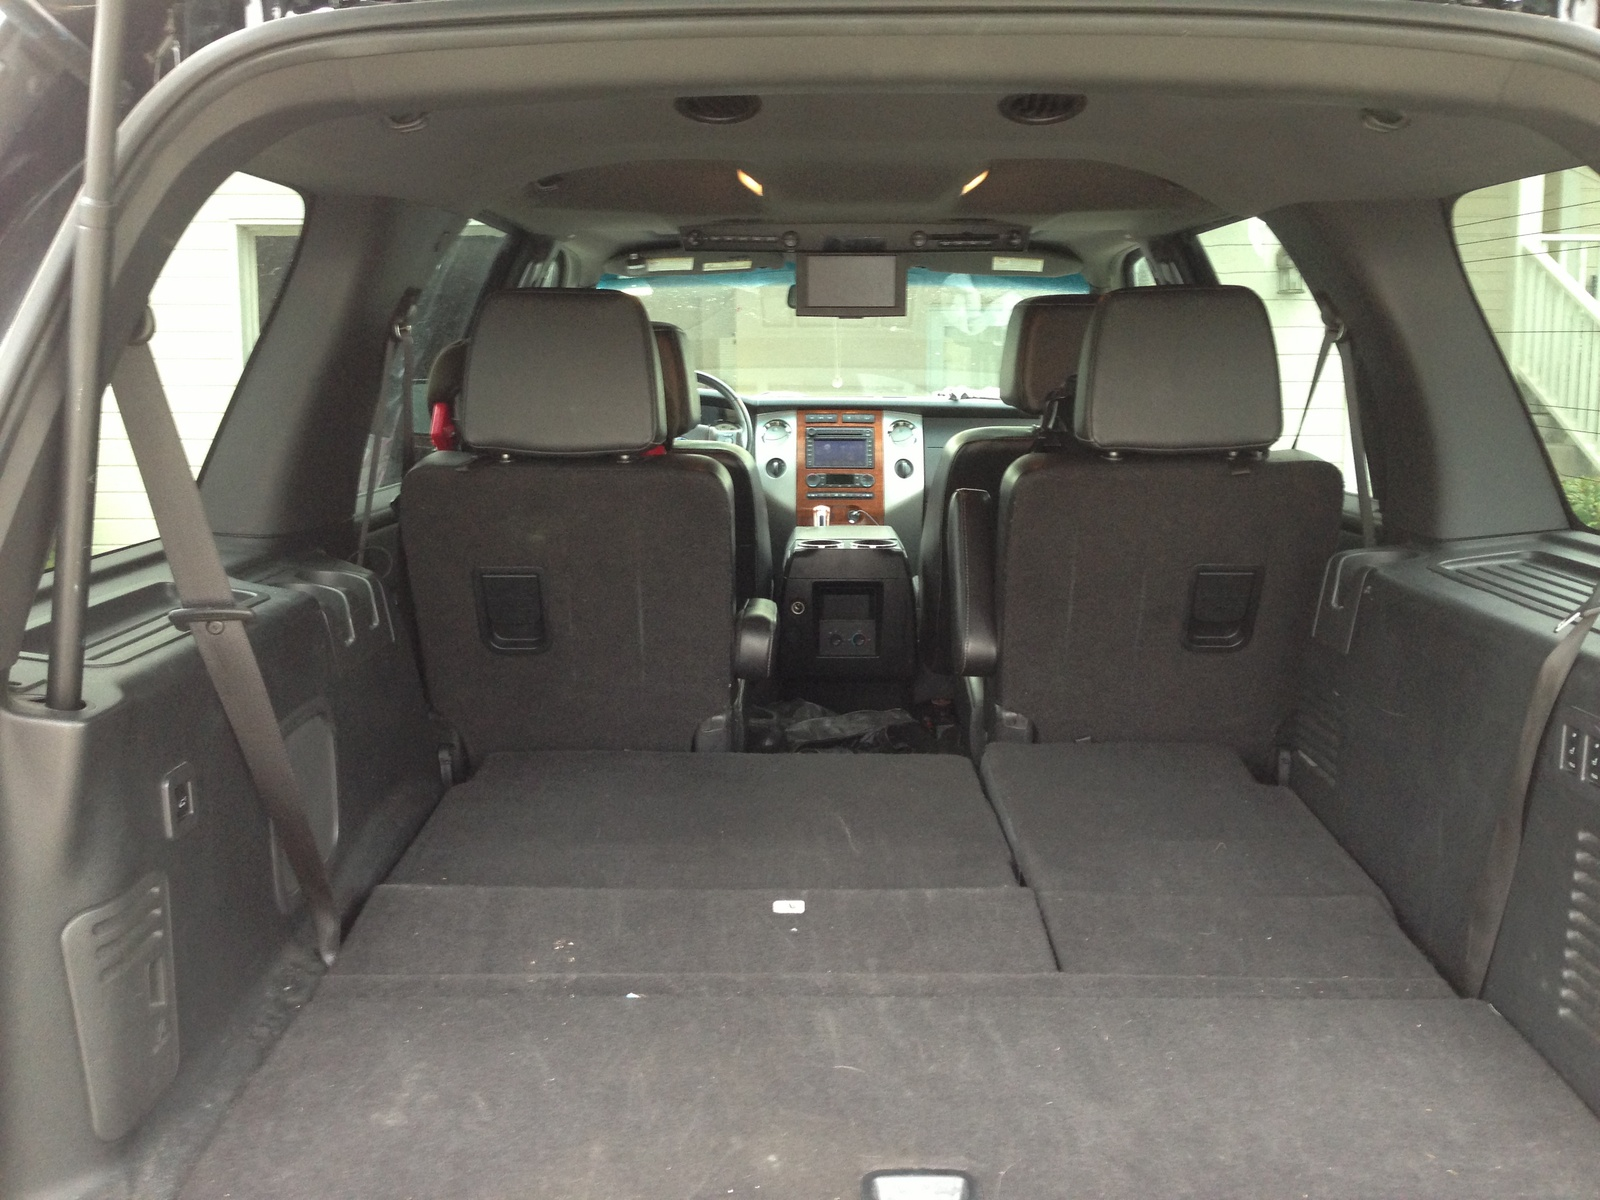 2007 Ford Expedition Interior Pictures Cargurus